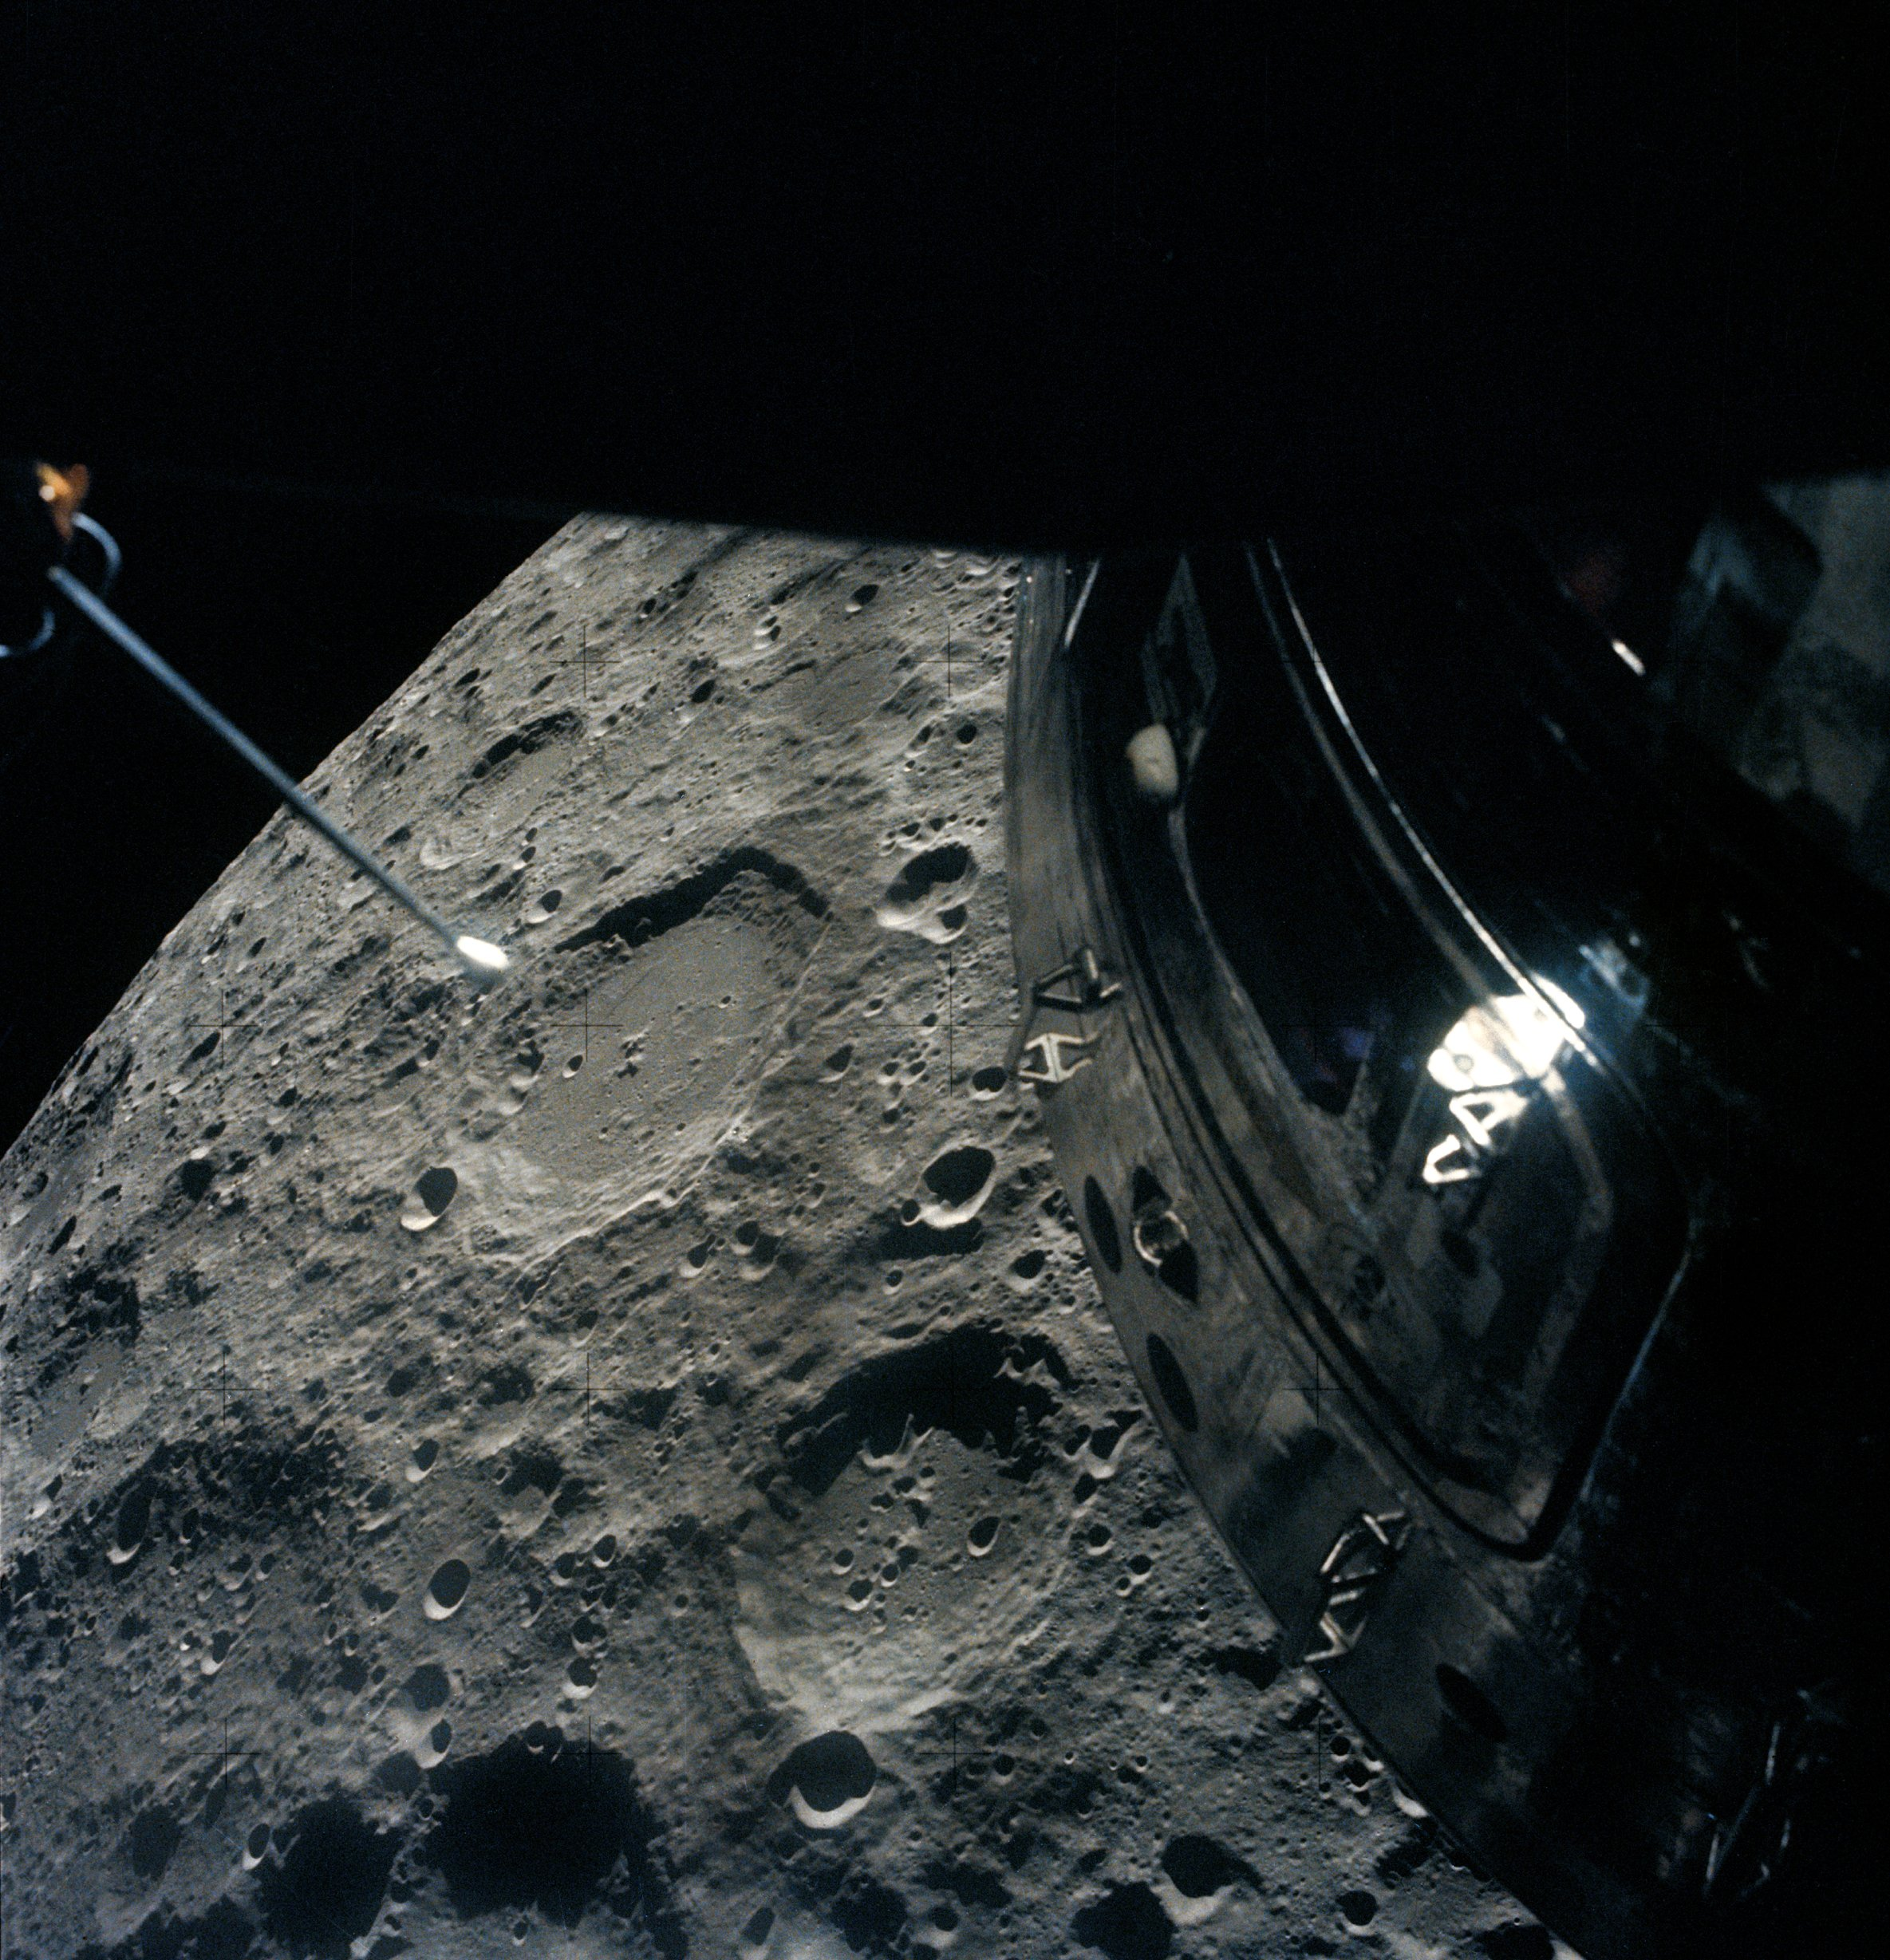 Apollo_13_passing_Moon.jpg